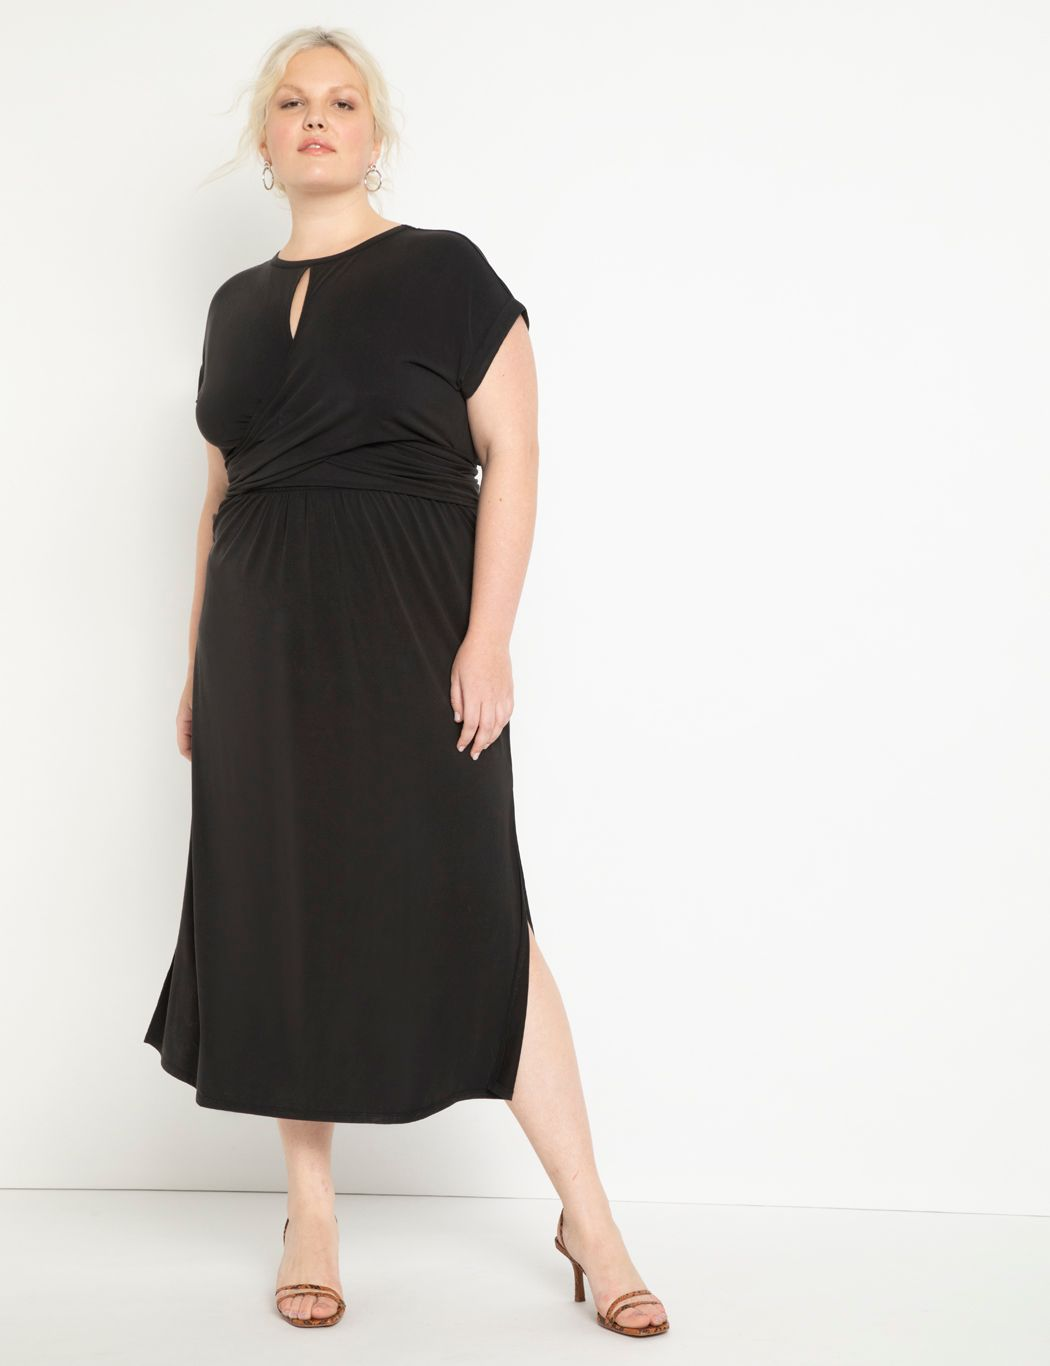 Cinched Bodice Dress